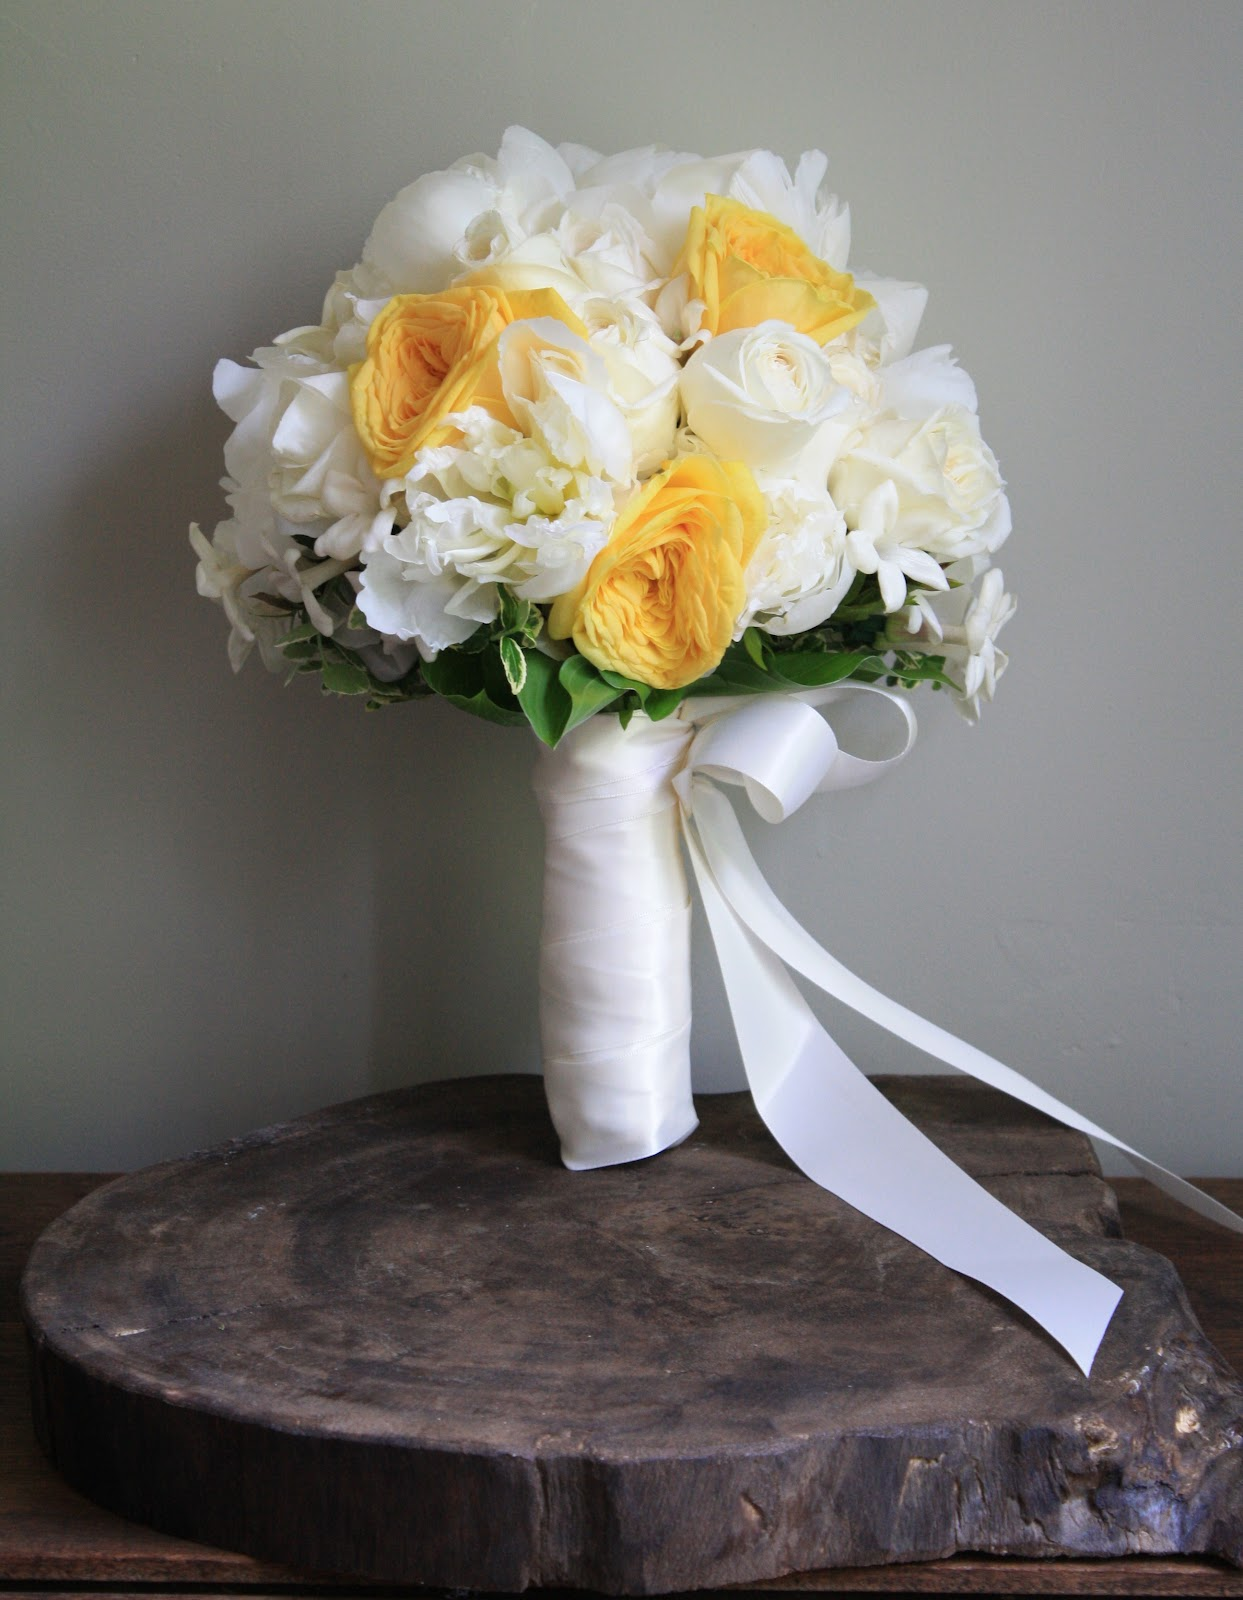 yellow garden rose and peony wedding bouquet fluffy white peonies yellow garden roses